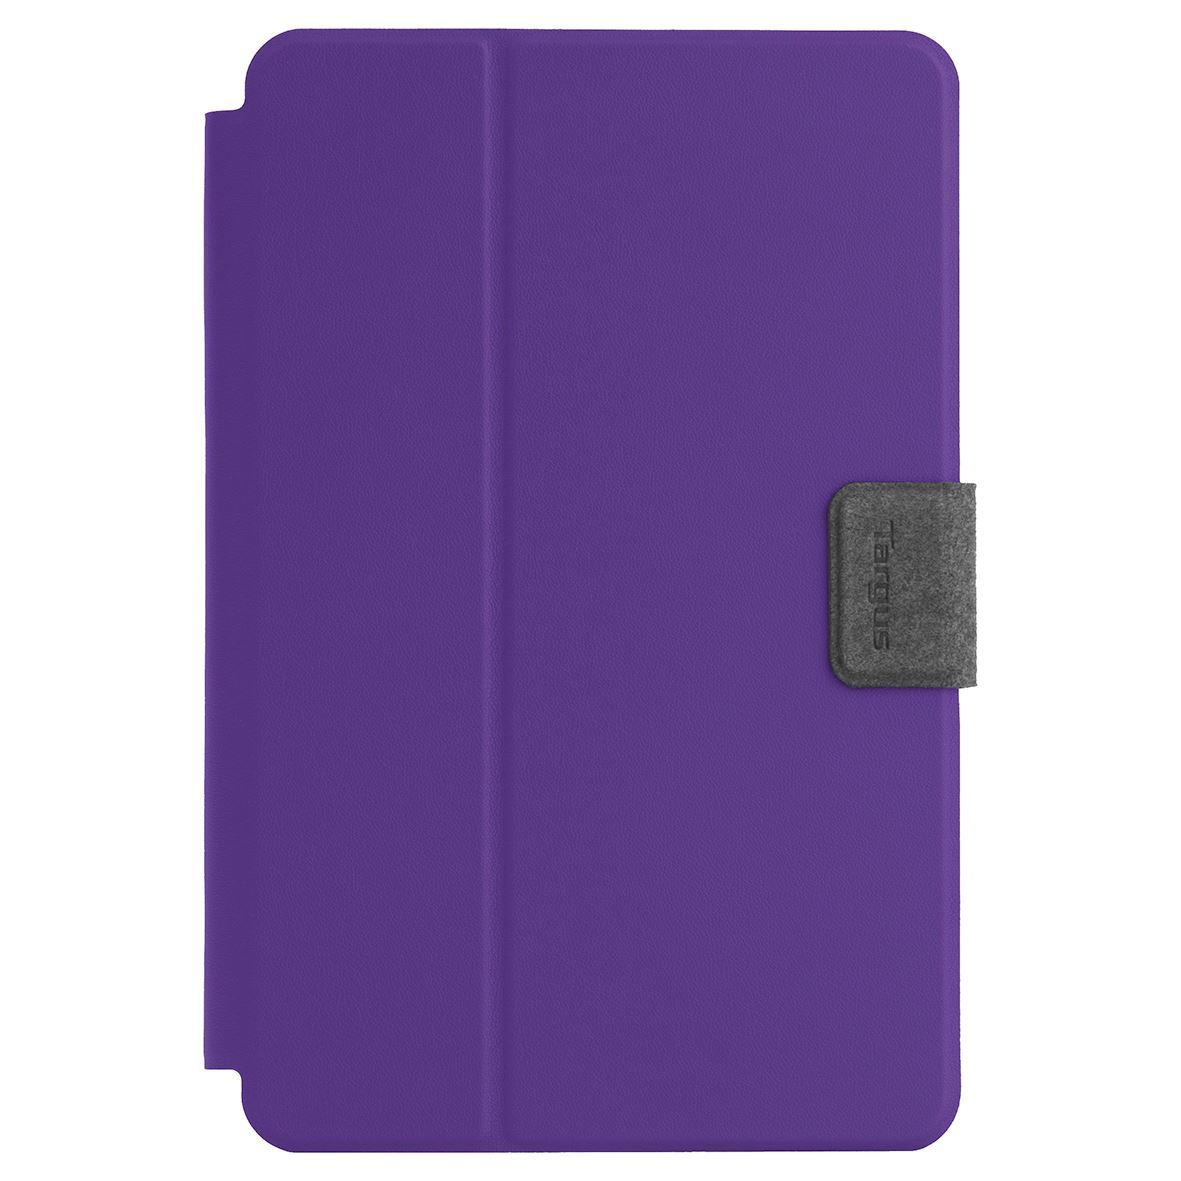 Safefit 9 10 Inch Rotating Universal Tablet Case Purple